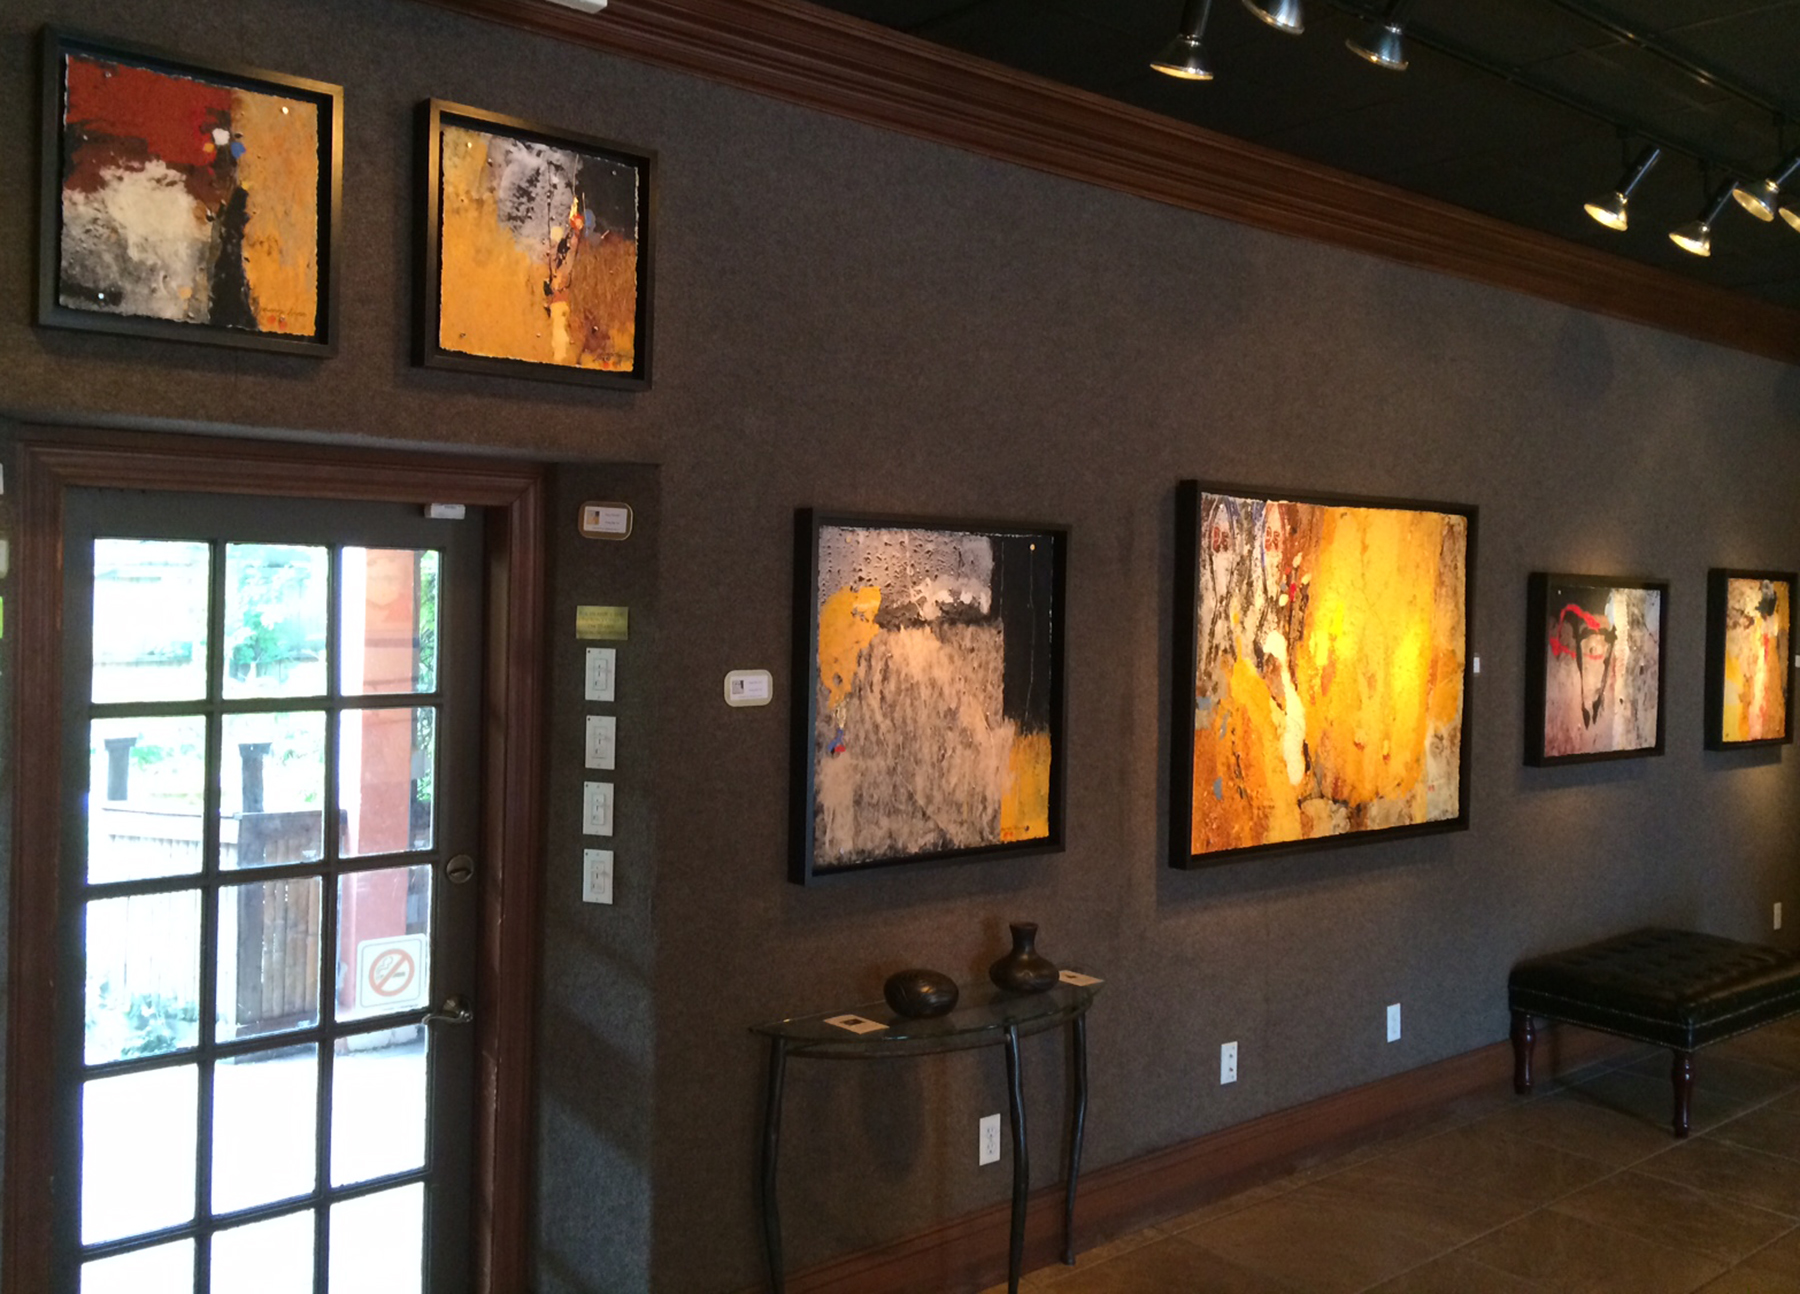 Artwork by the Yuns, on view on the walls of Galeria del Mar, 9 King St.